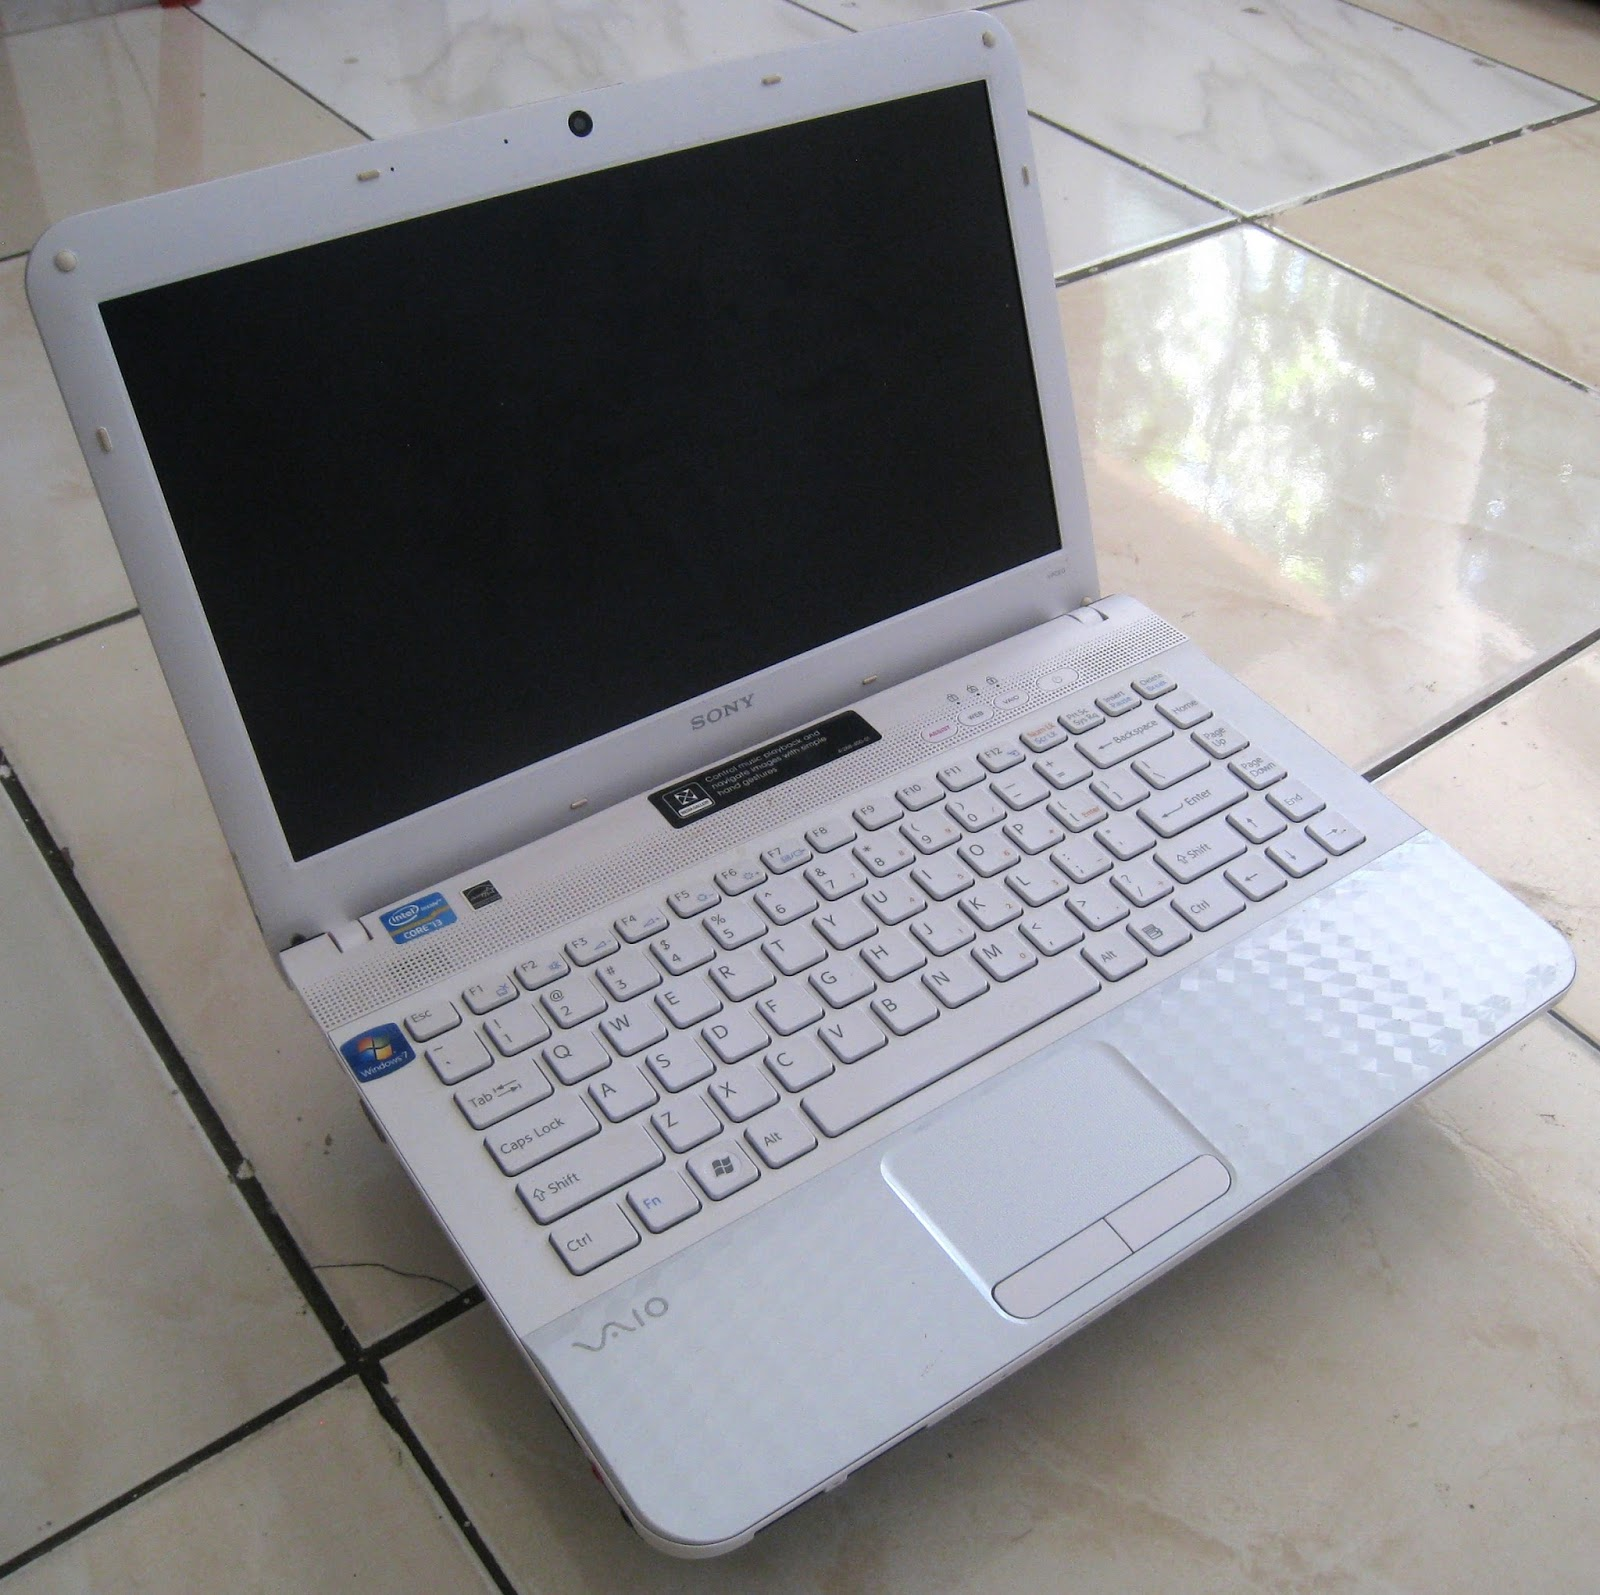 sony vaio laptop. jual sony vaio, laptop 2 jutaan, intel core i3 sandybridge, vaio vpceg1bfx